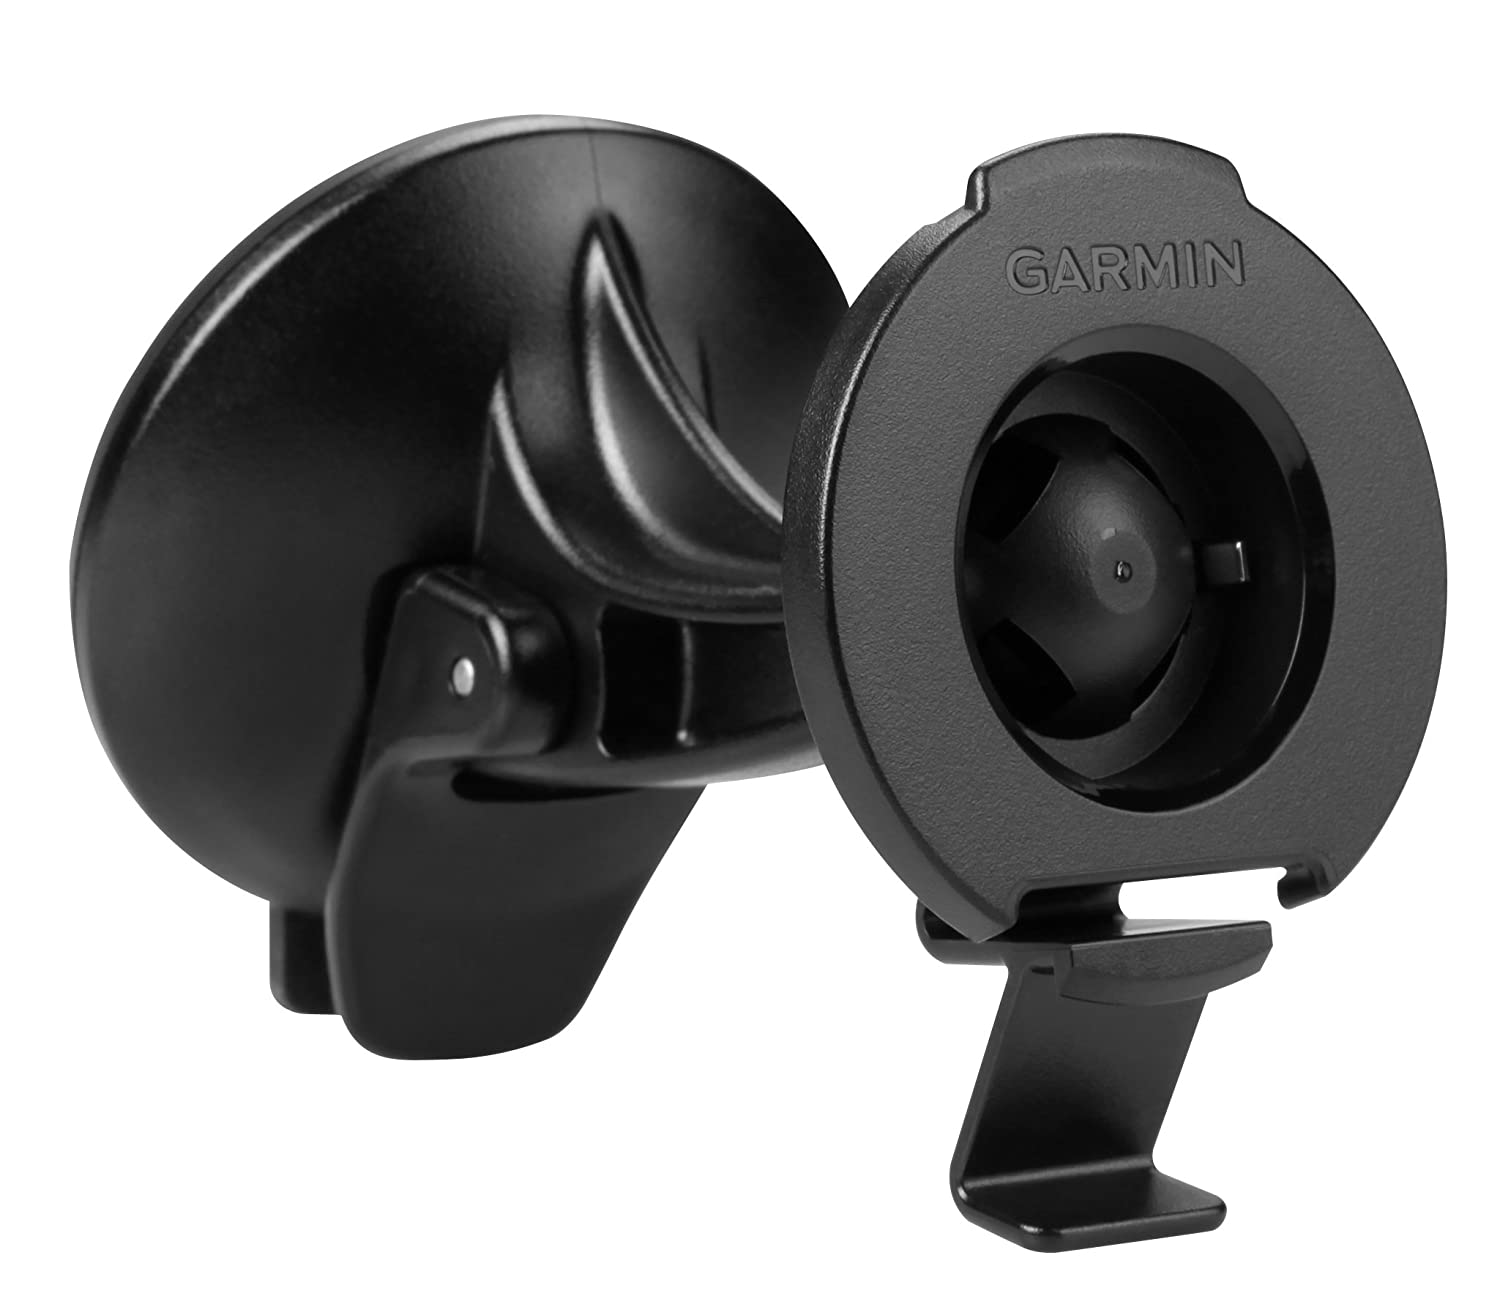 Garmin 4 3 Inch 5 Inch Suction Mount Image 1